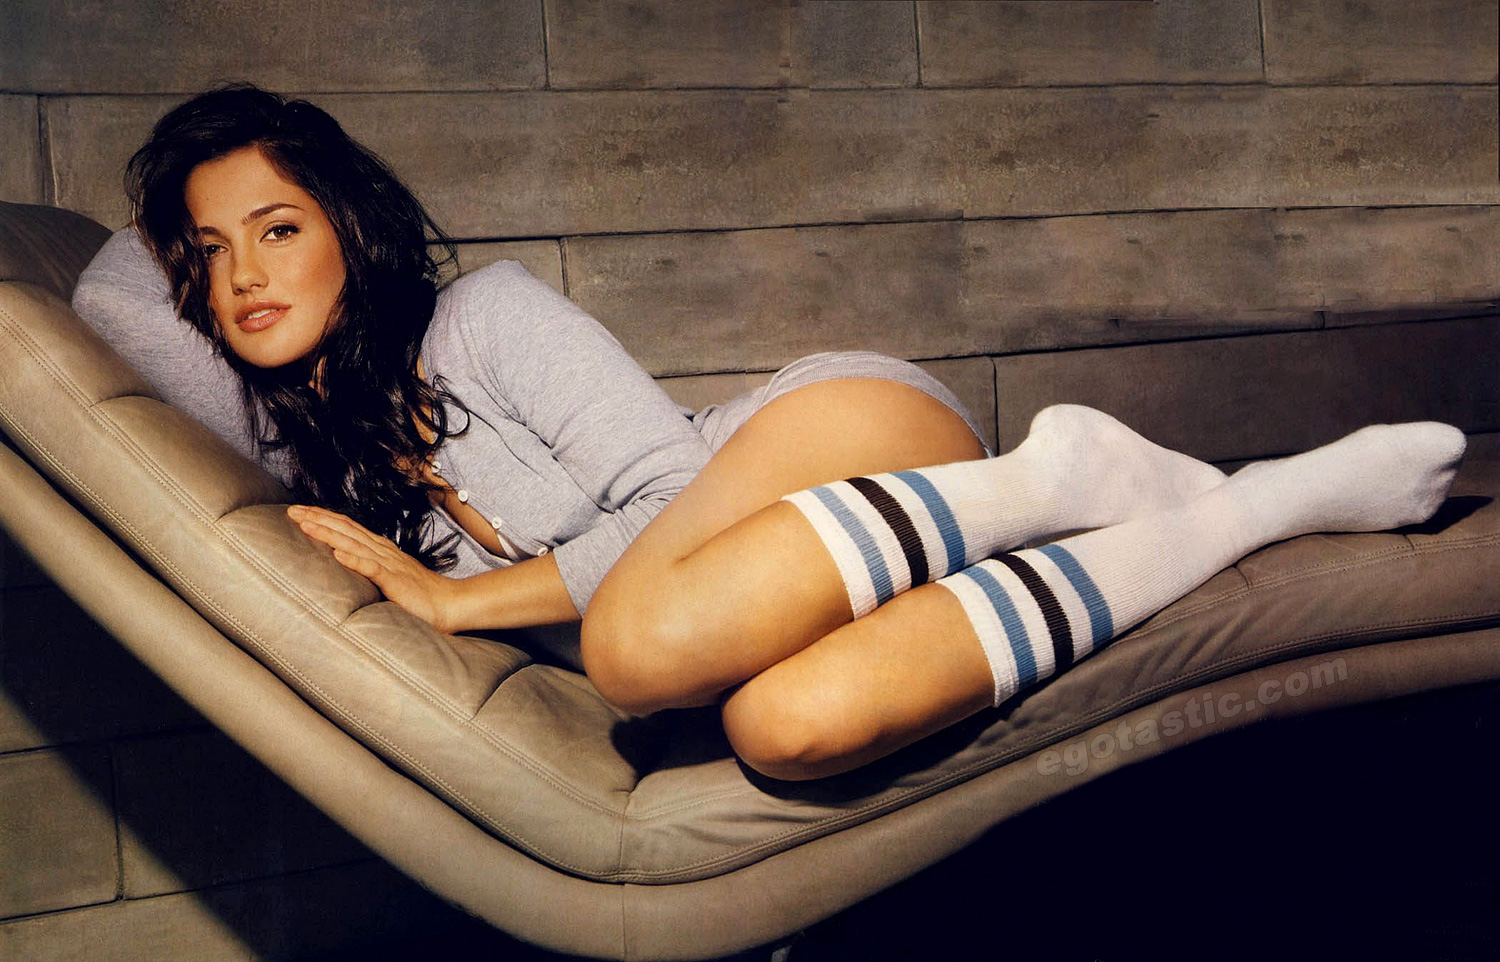 Another Reason to Masturbate 1: Minka Kelly Minka-kelly+1